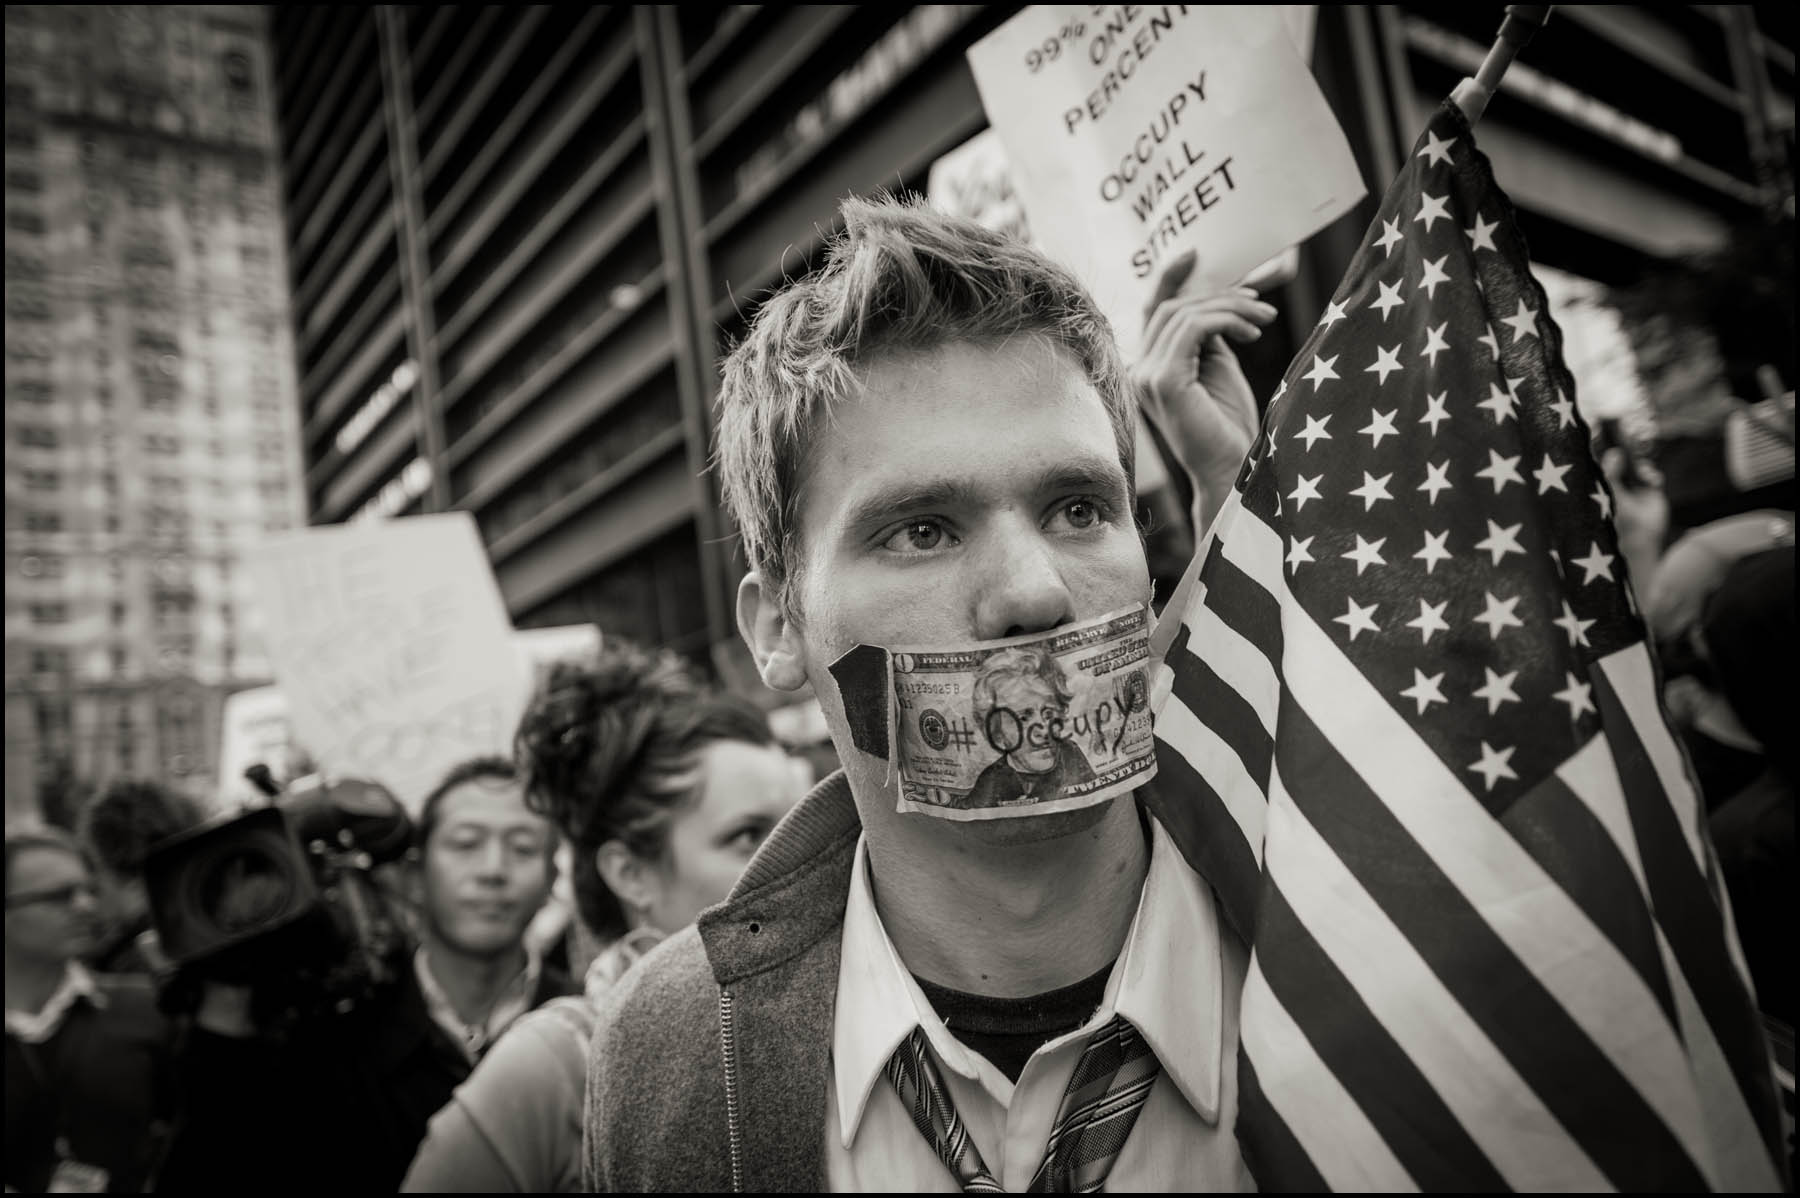 Occupy_Wall_Street004_2